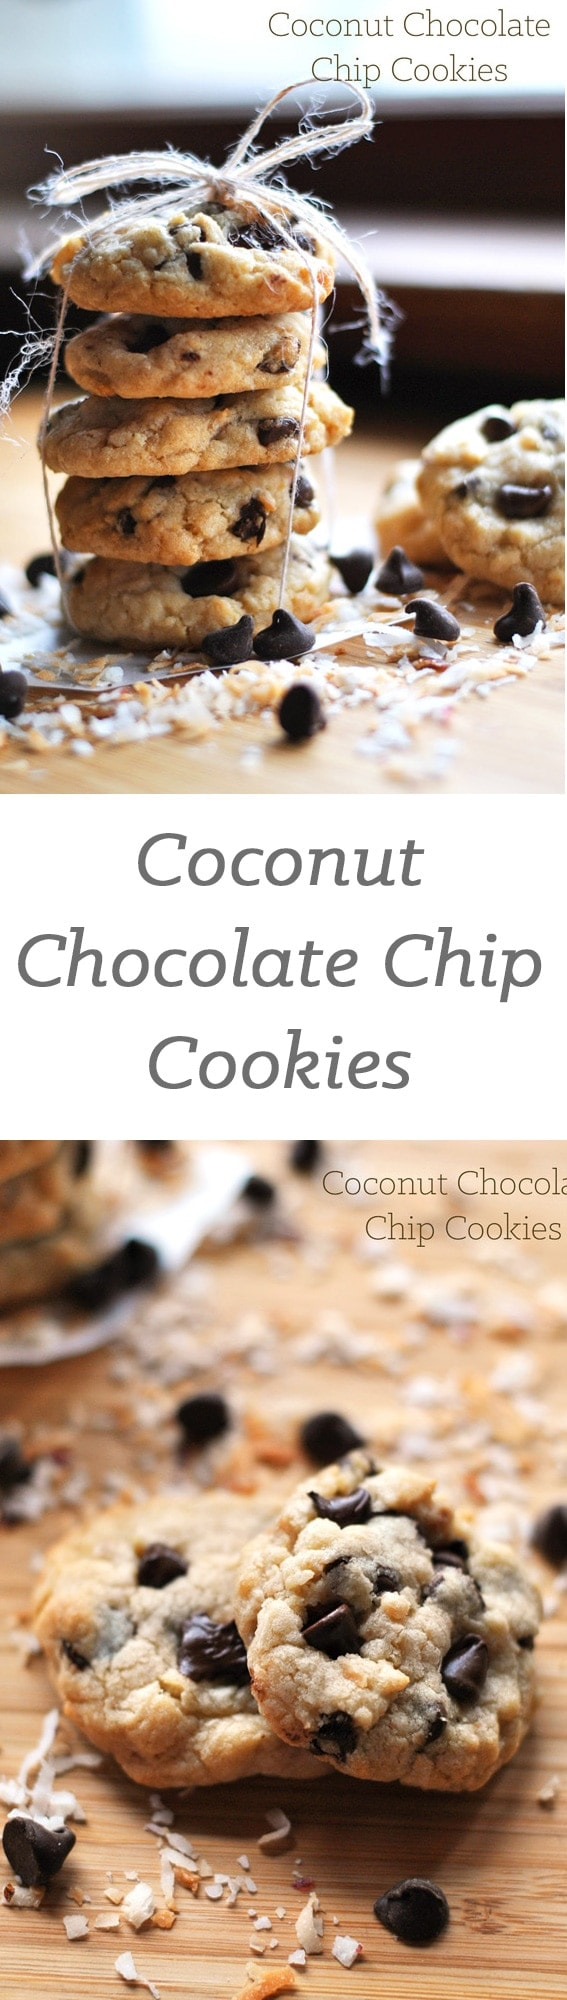 These coconut chocolate chip cookies are packed with coconut flavor ...